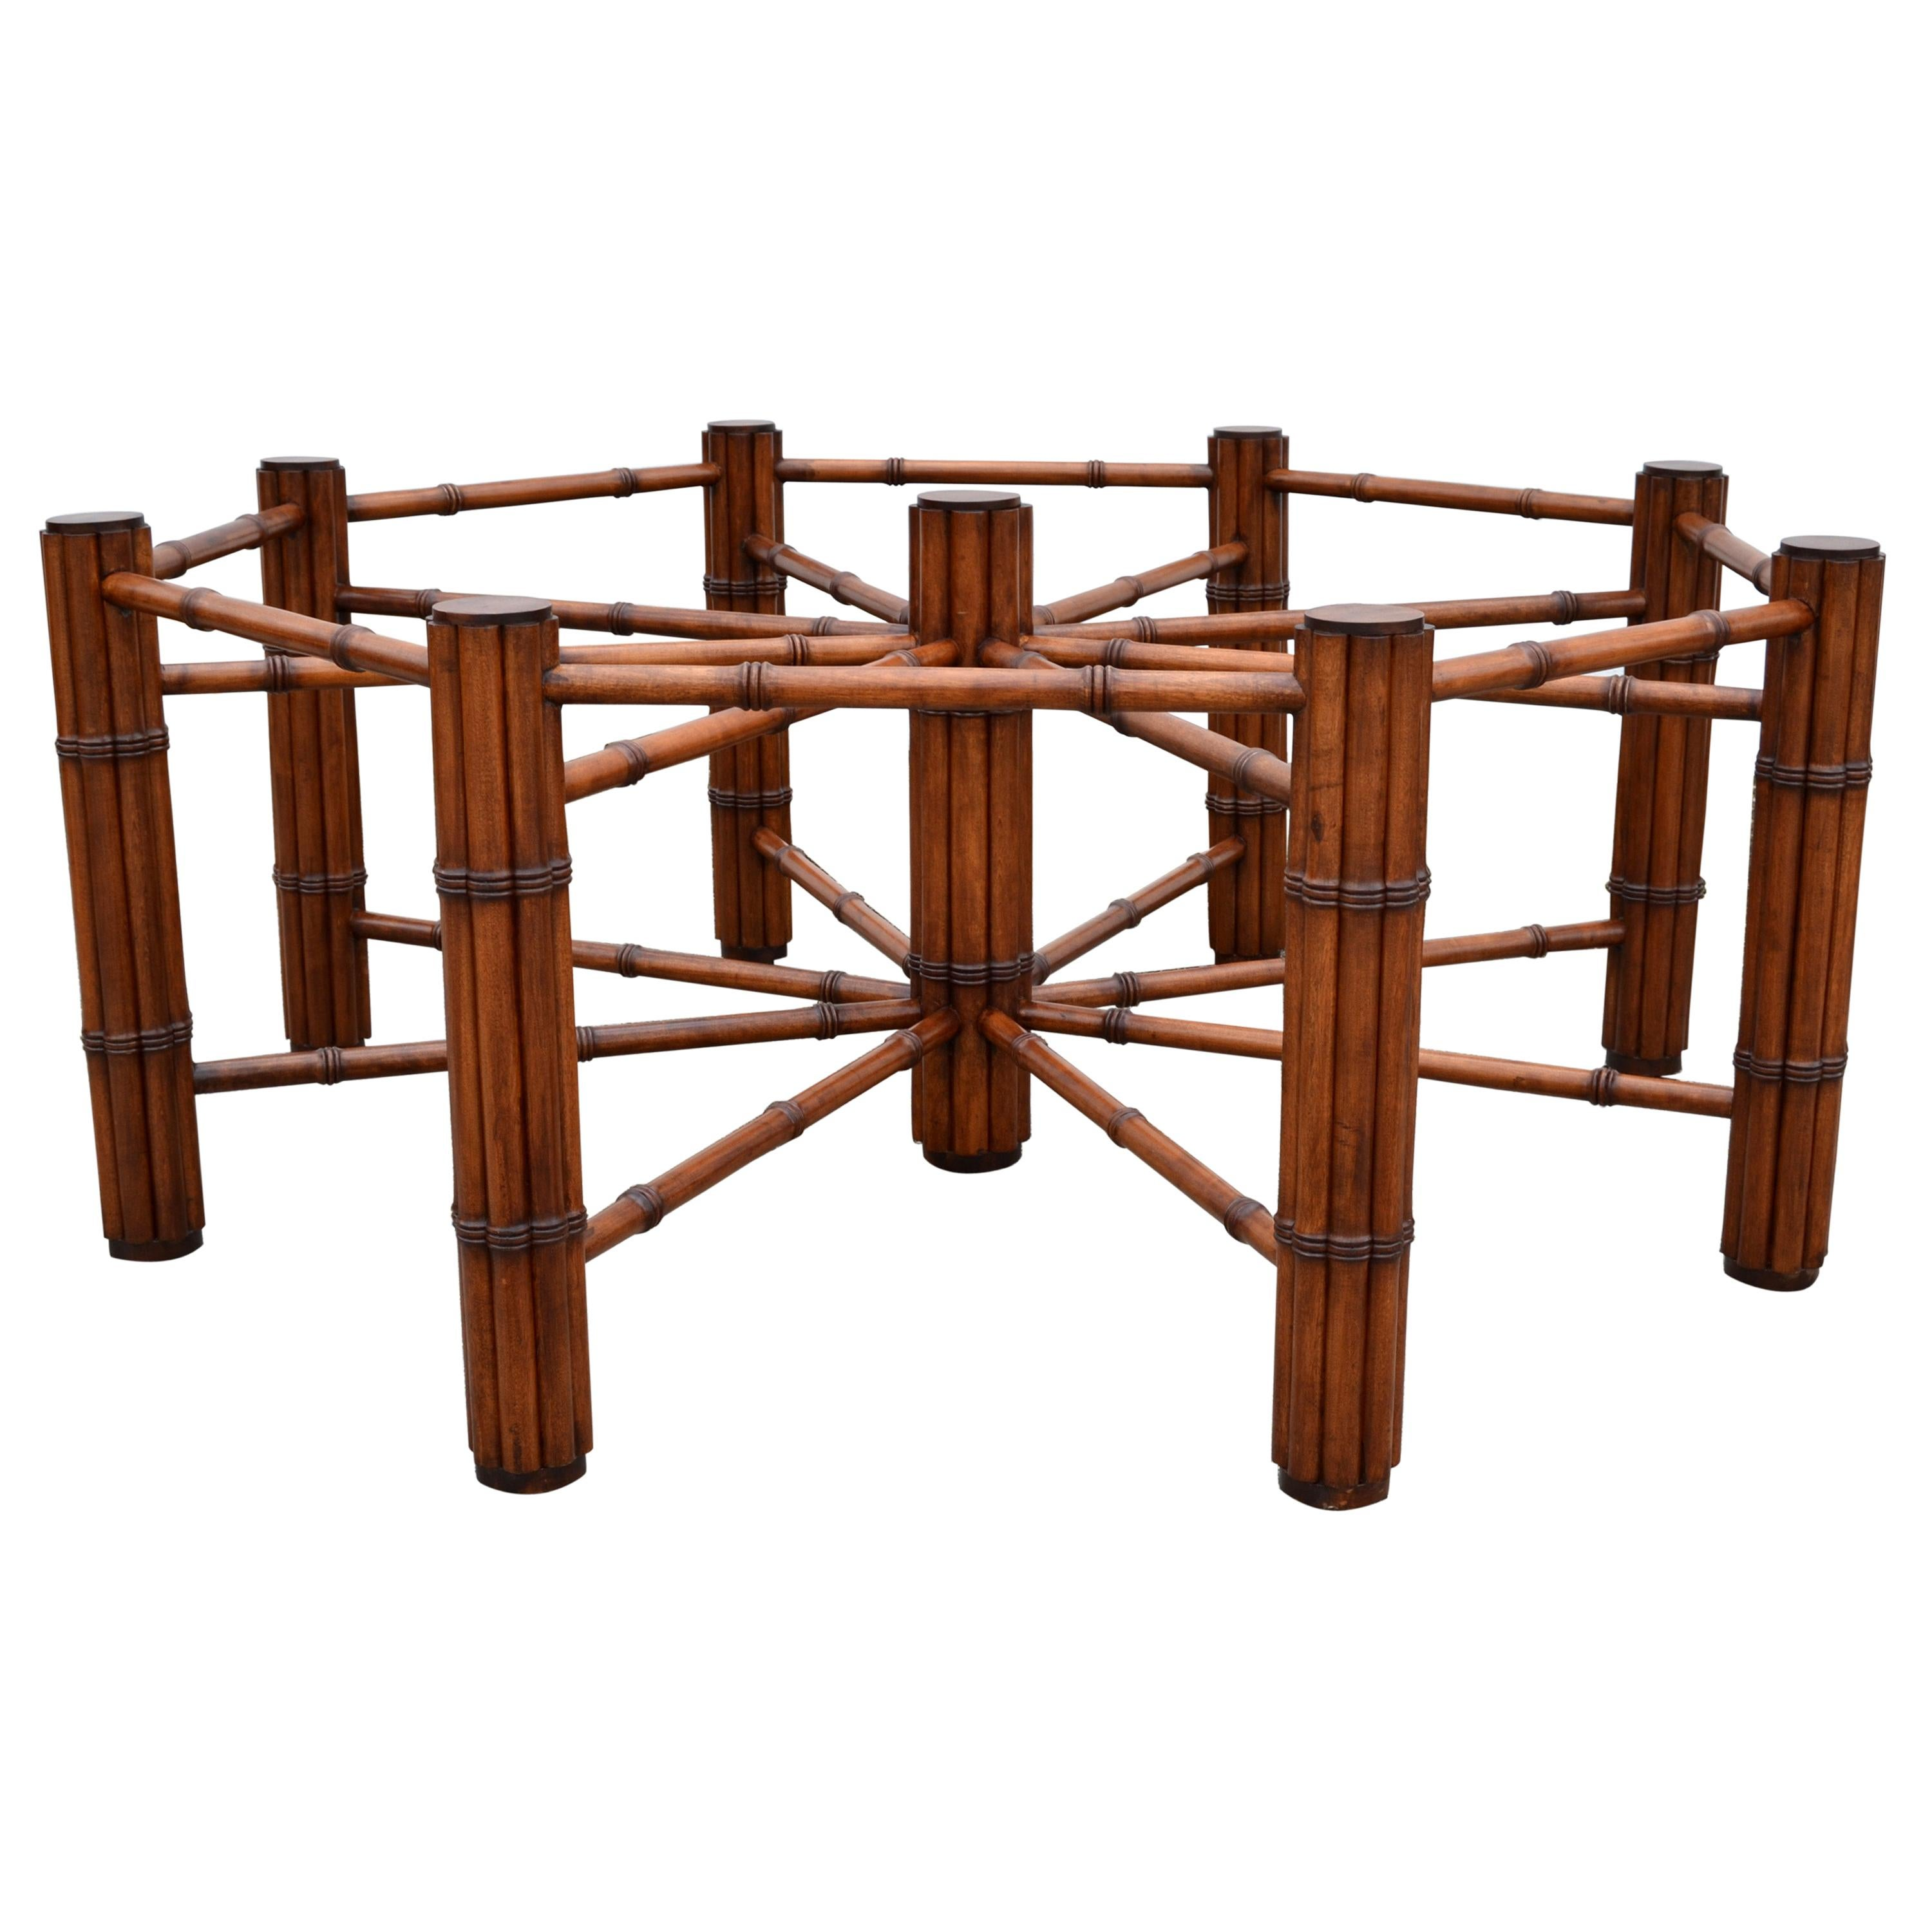 McGuire Style Round Faux Bamboo Wood Mid-Century Modern Dining Table American